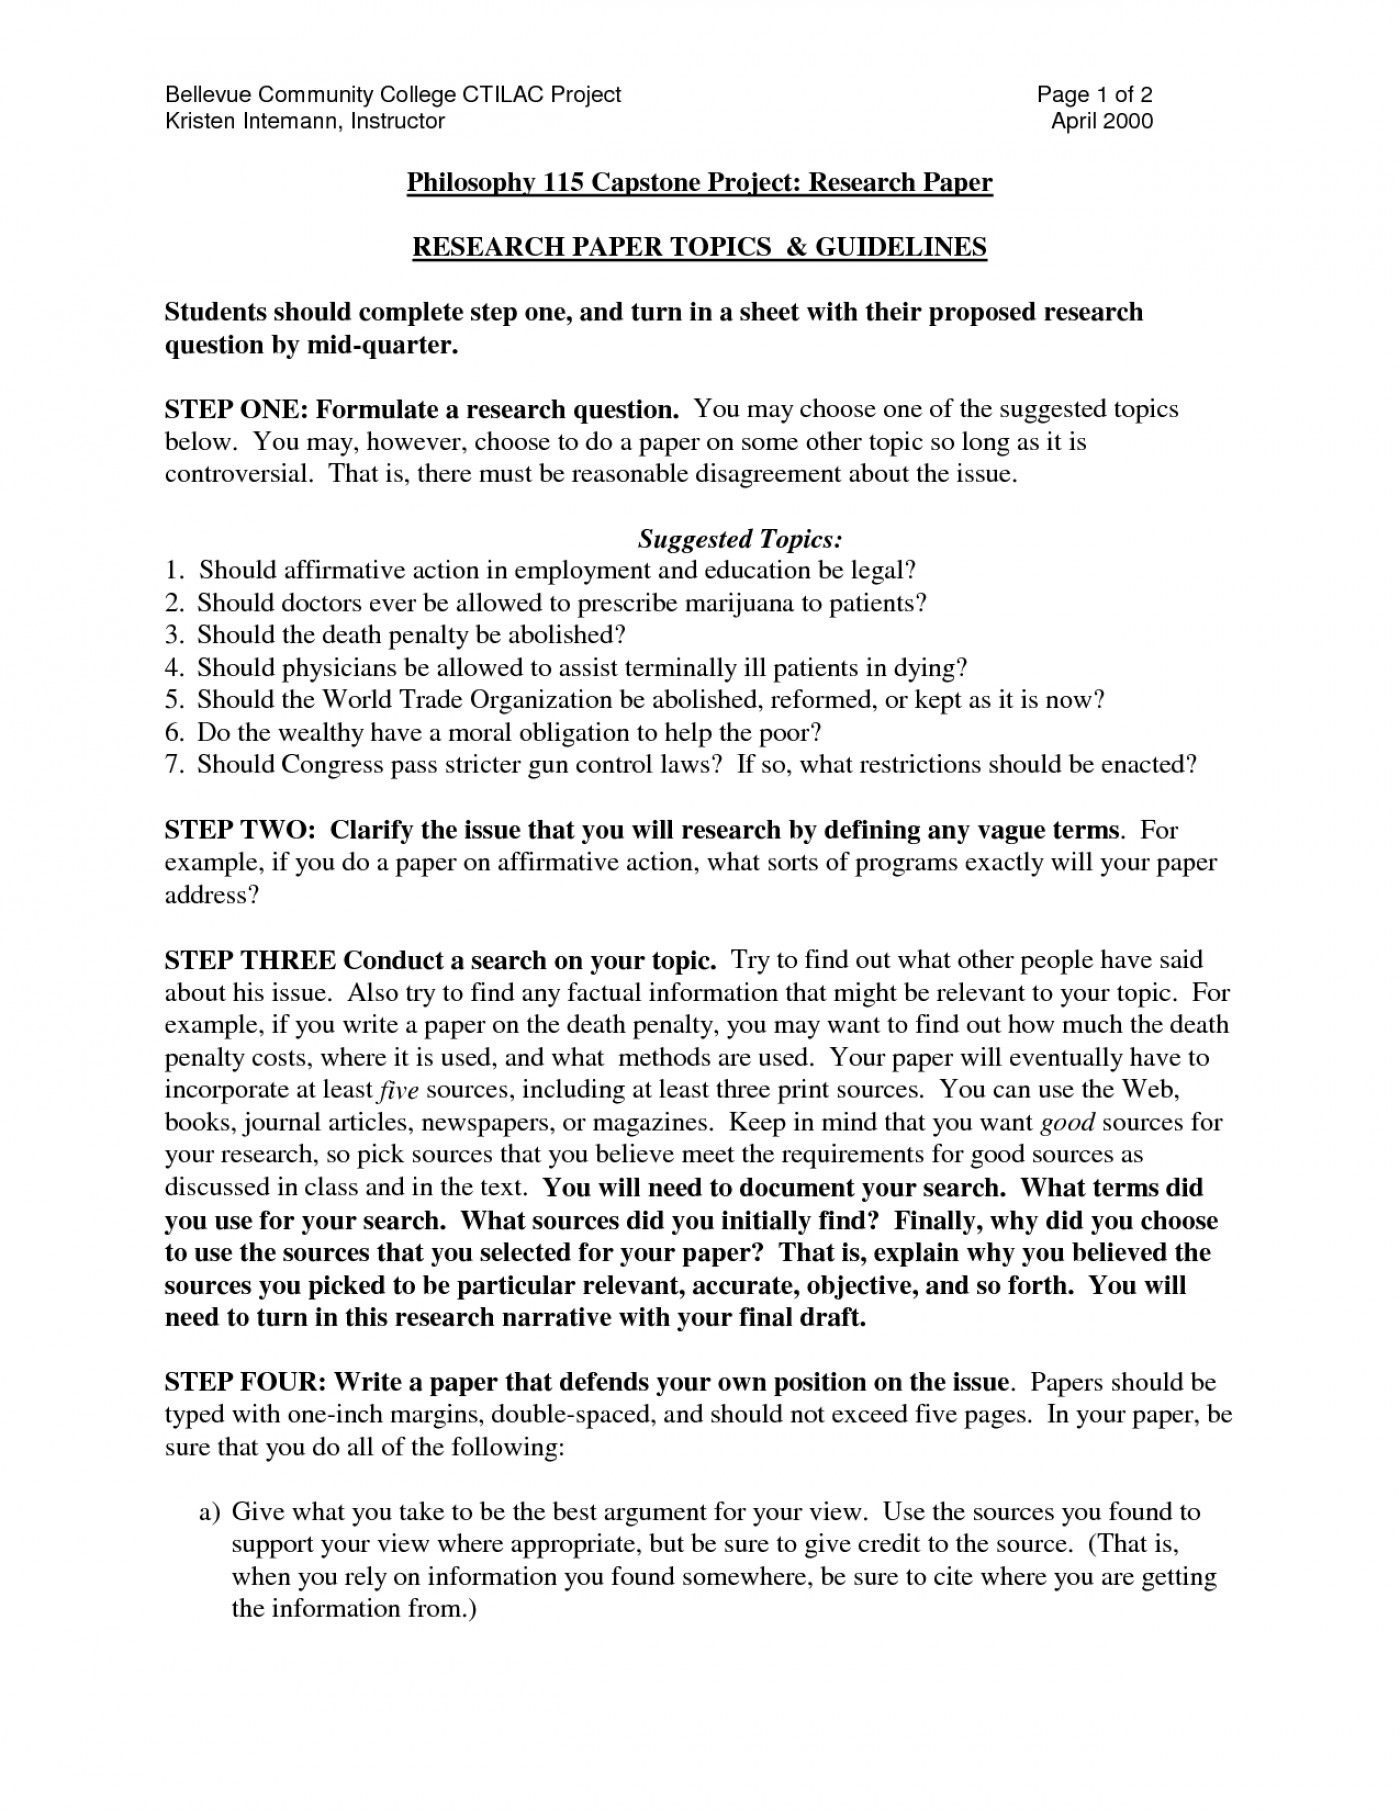 002 Research Paper Examples For College Impressive Sample Topics Students In The Philippines 1400